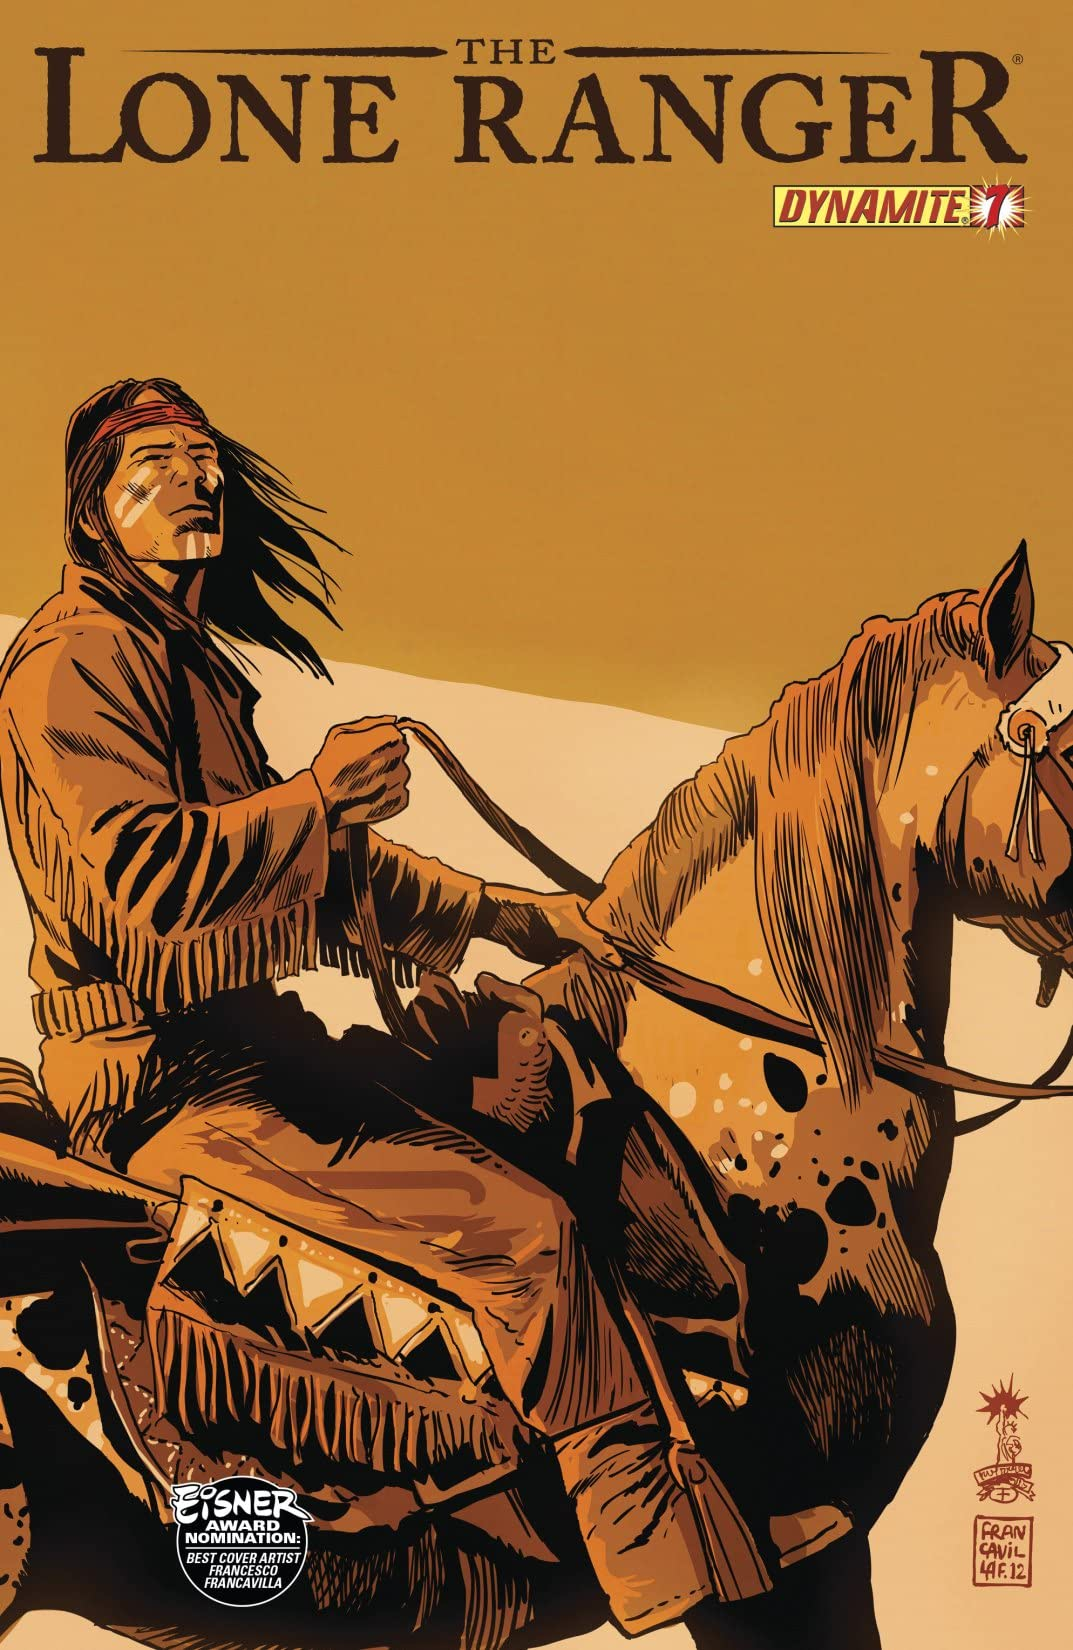 The Lone Ranger Vol. 2 #7